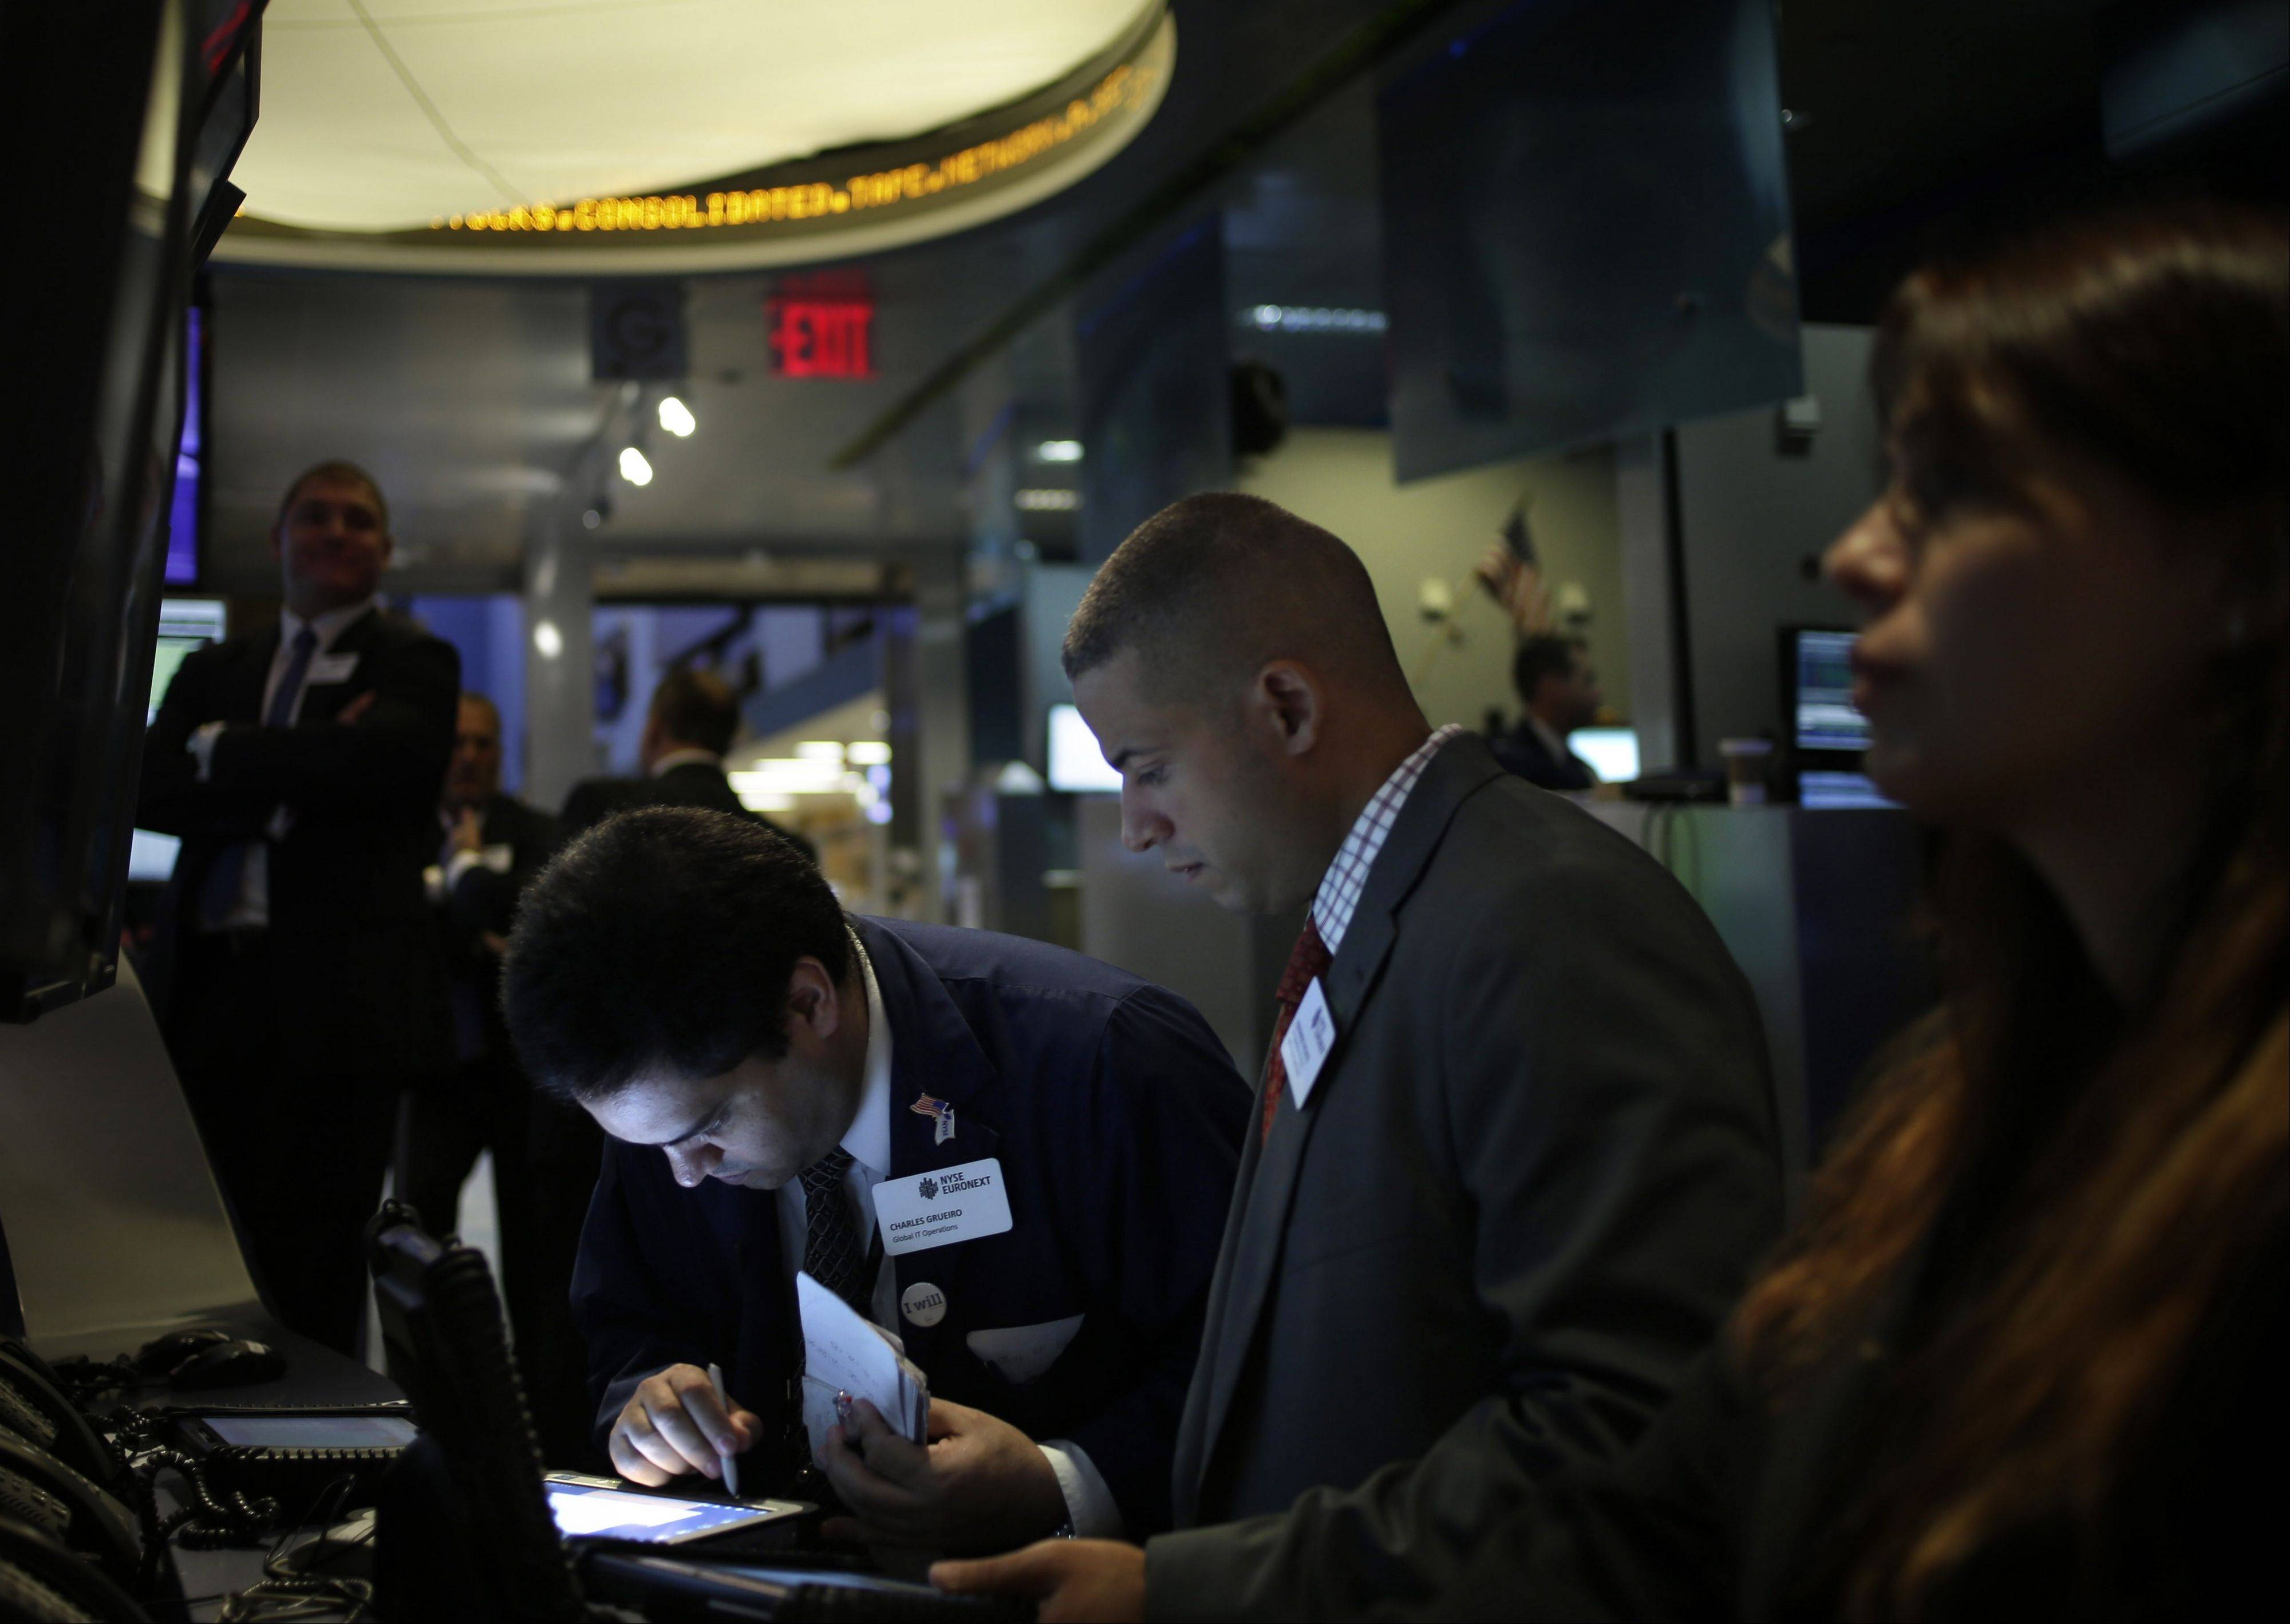 U.S. stocks fell, halting a seven- day win streak for the Standard & Poor's 500 Index, as materials producers slid amid growing concern over Syria and investors weighed the prospects for Federal Reserve stimulus cuts.